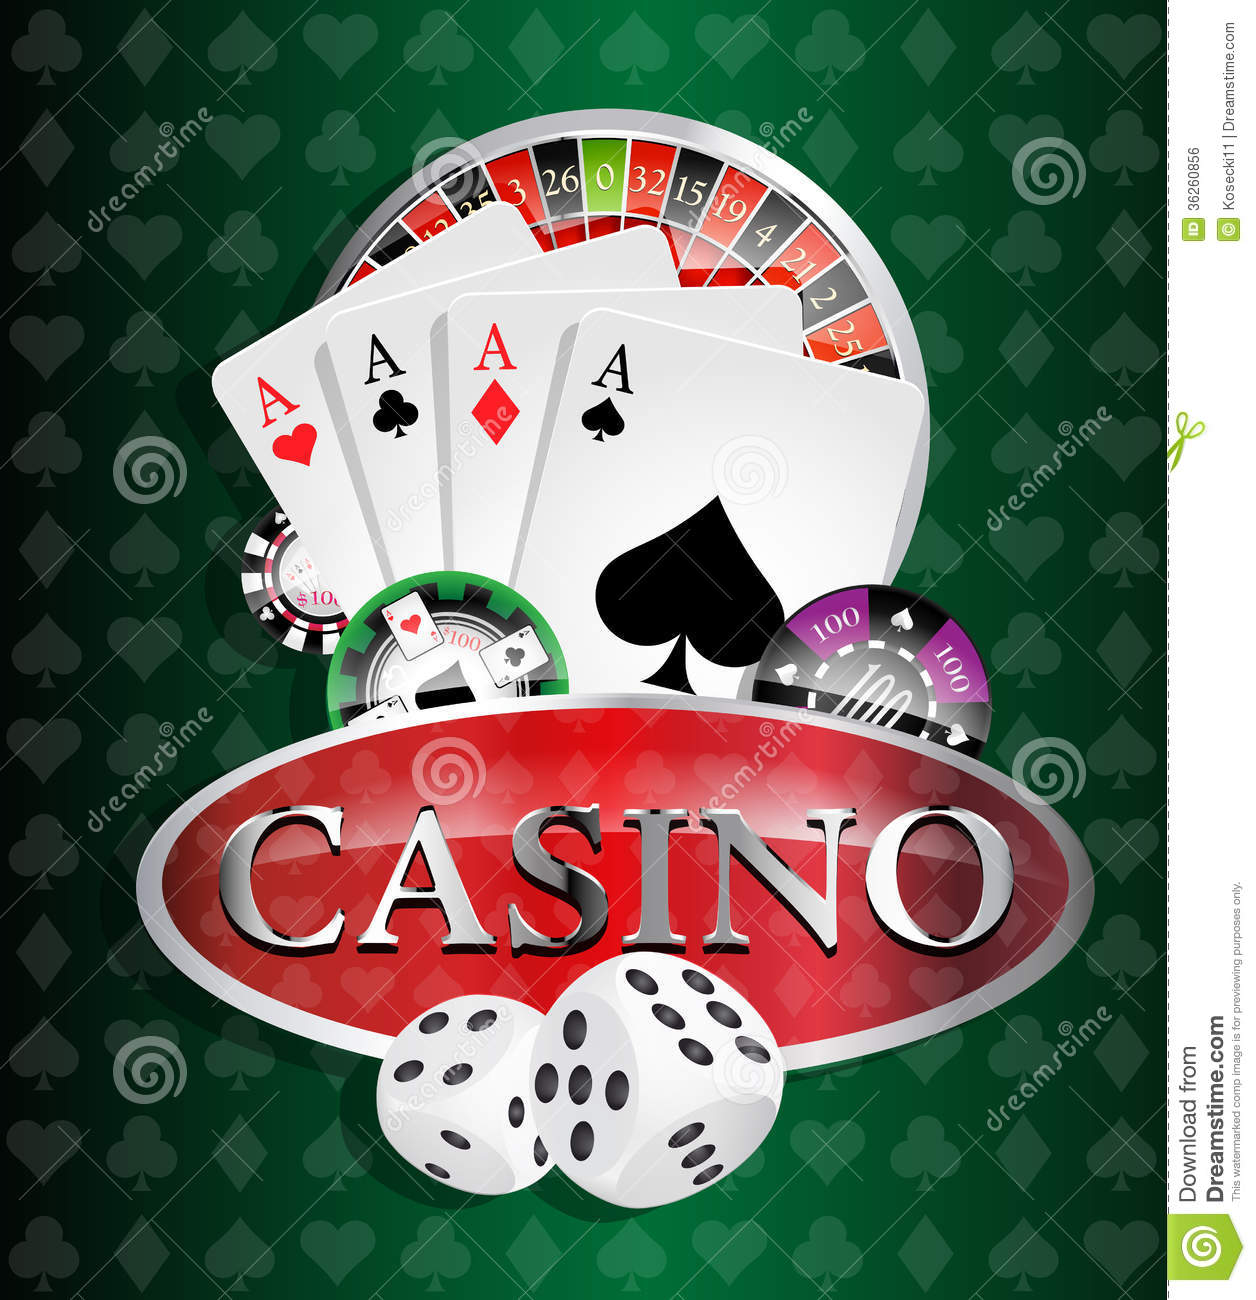 best casino online casino games dice